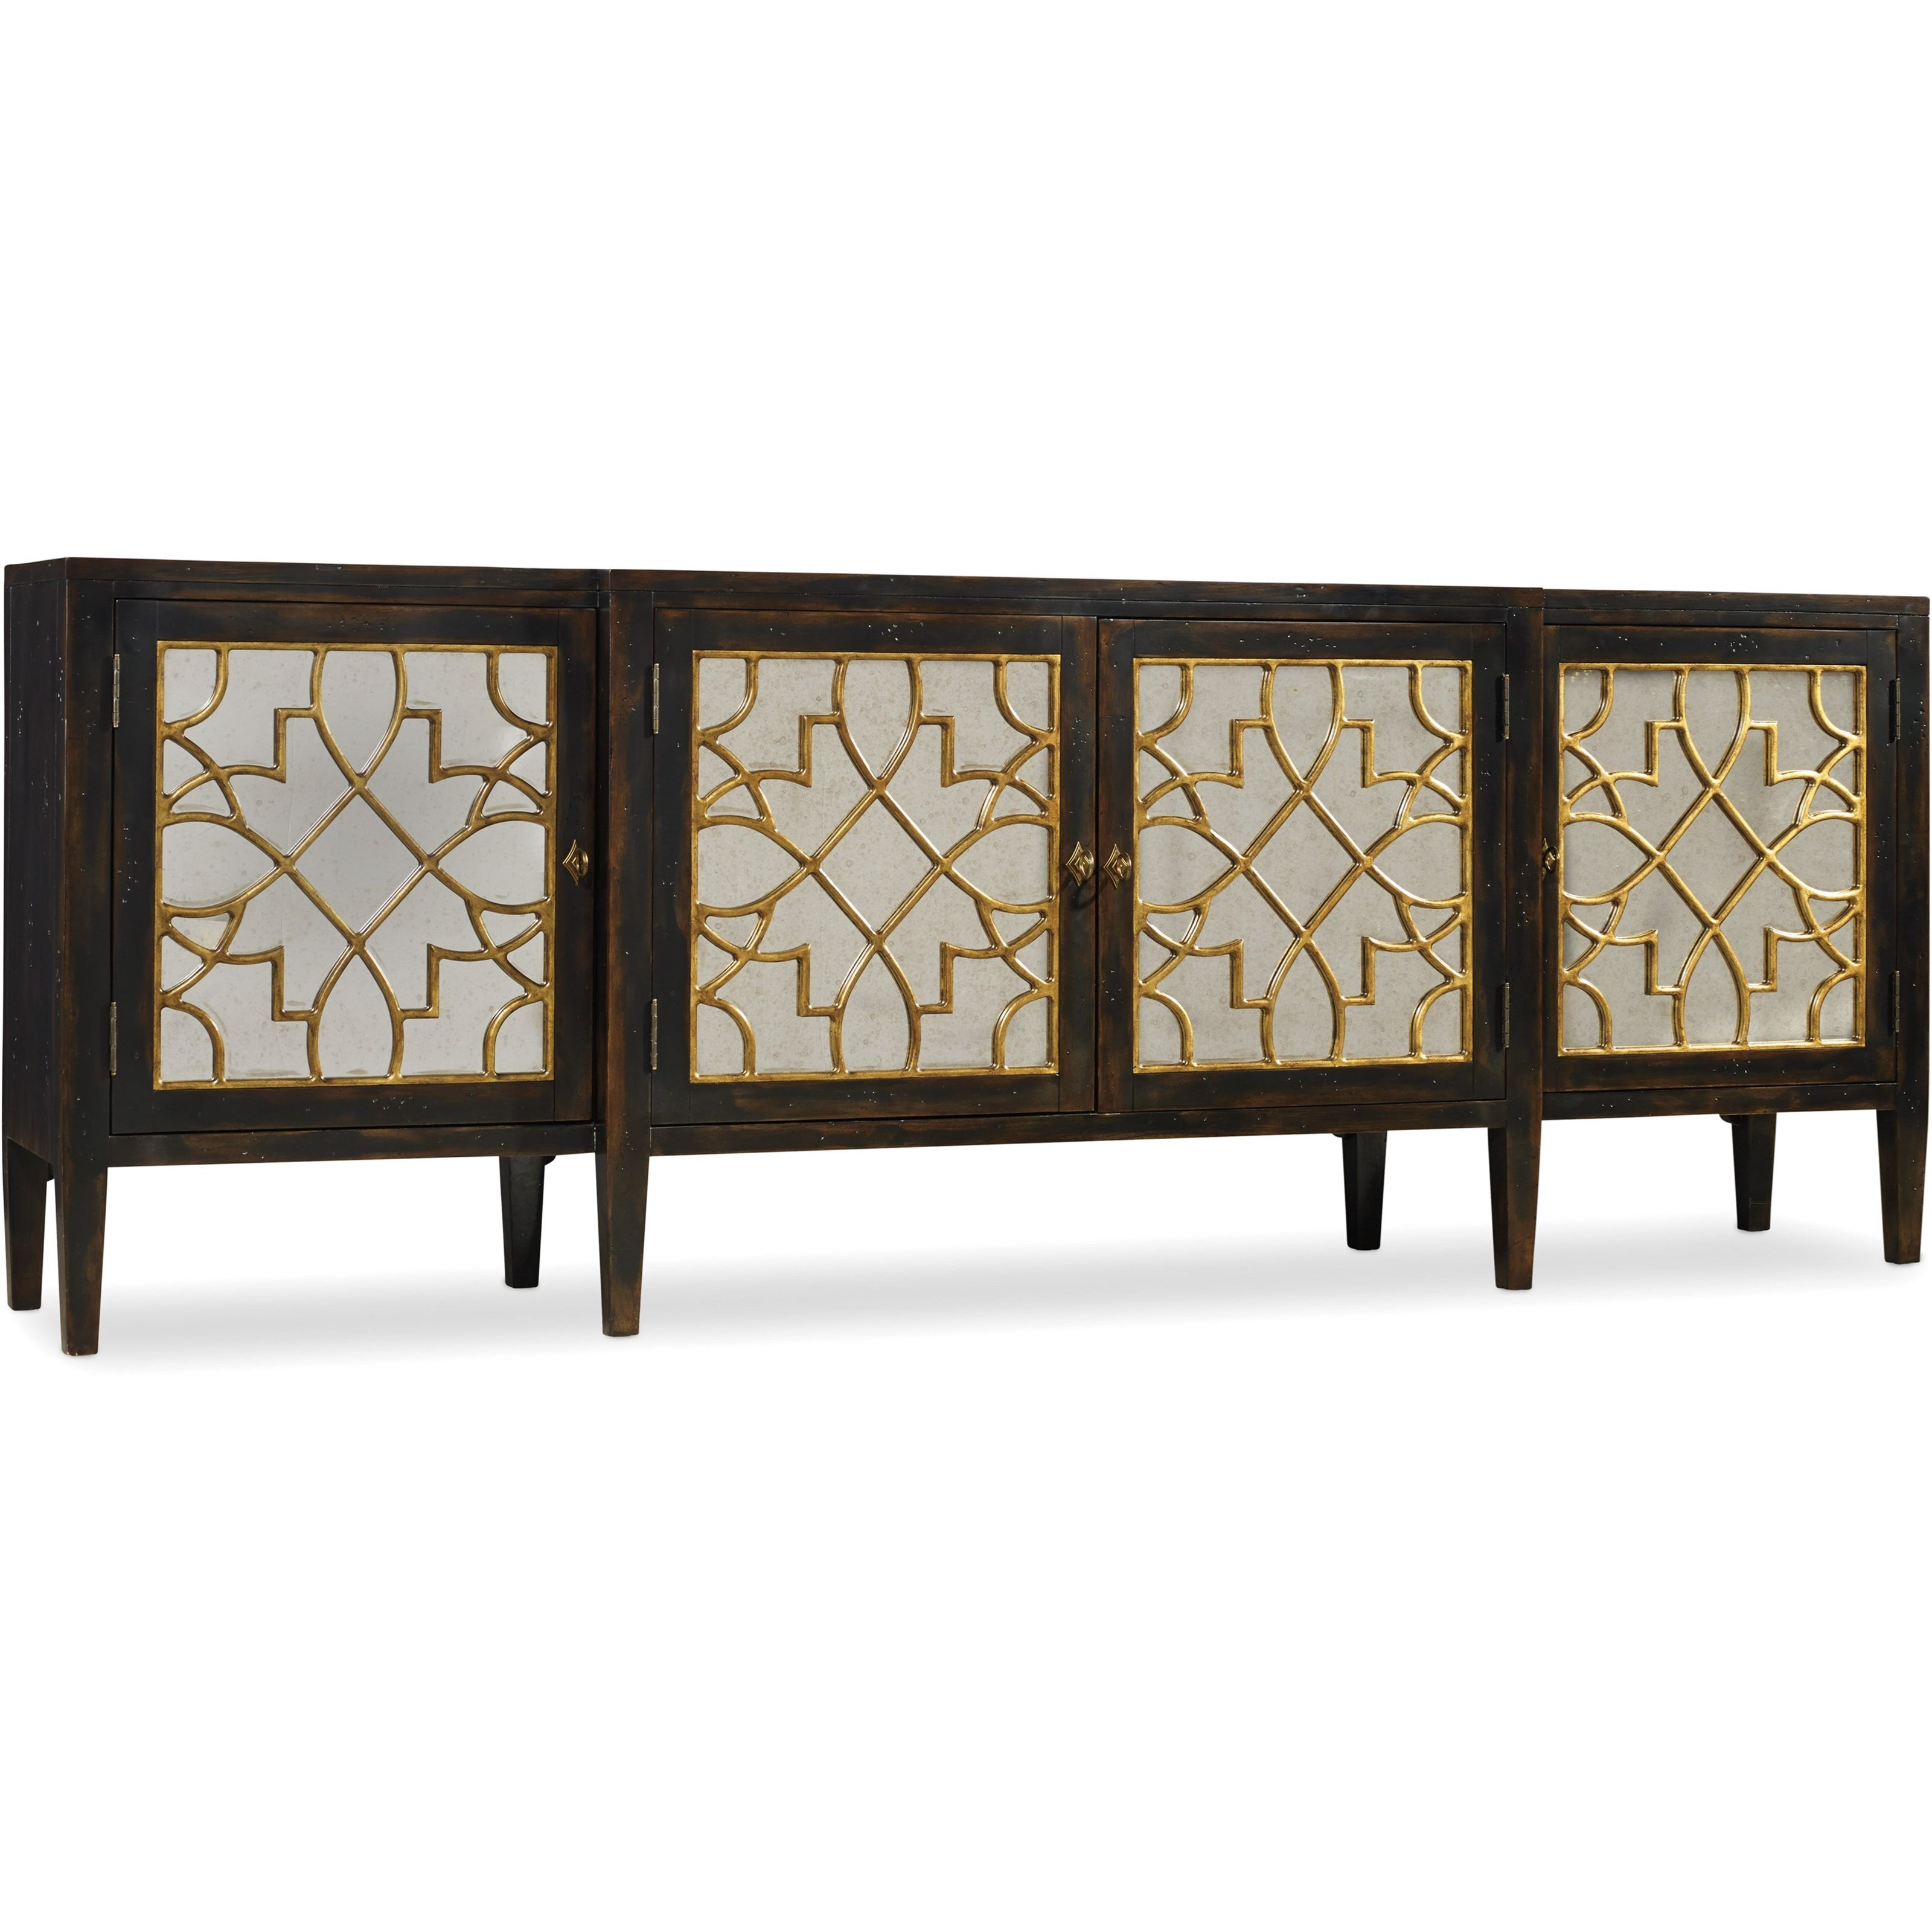 Sanctuary Four Door Mirrored Console by Hooker Furniture at Baer's Furniture